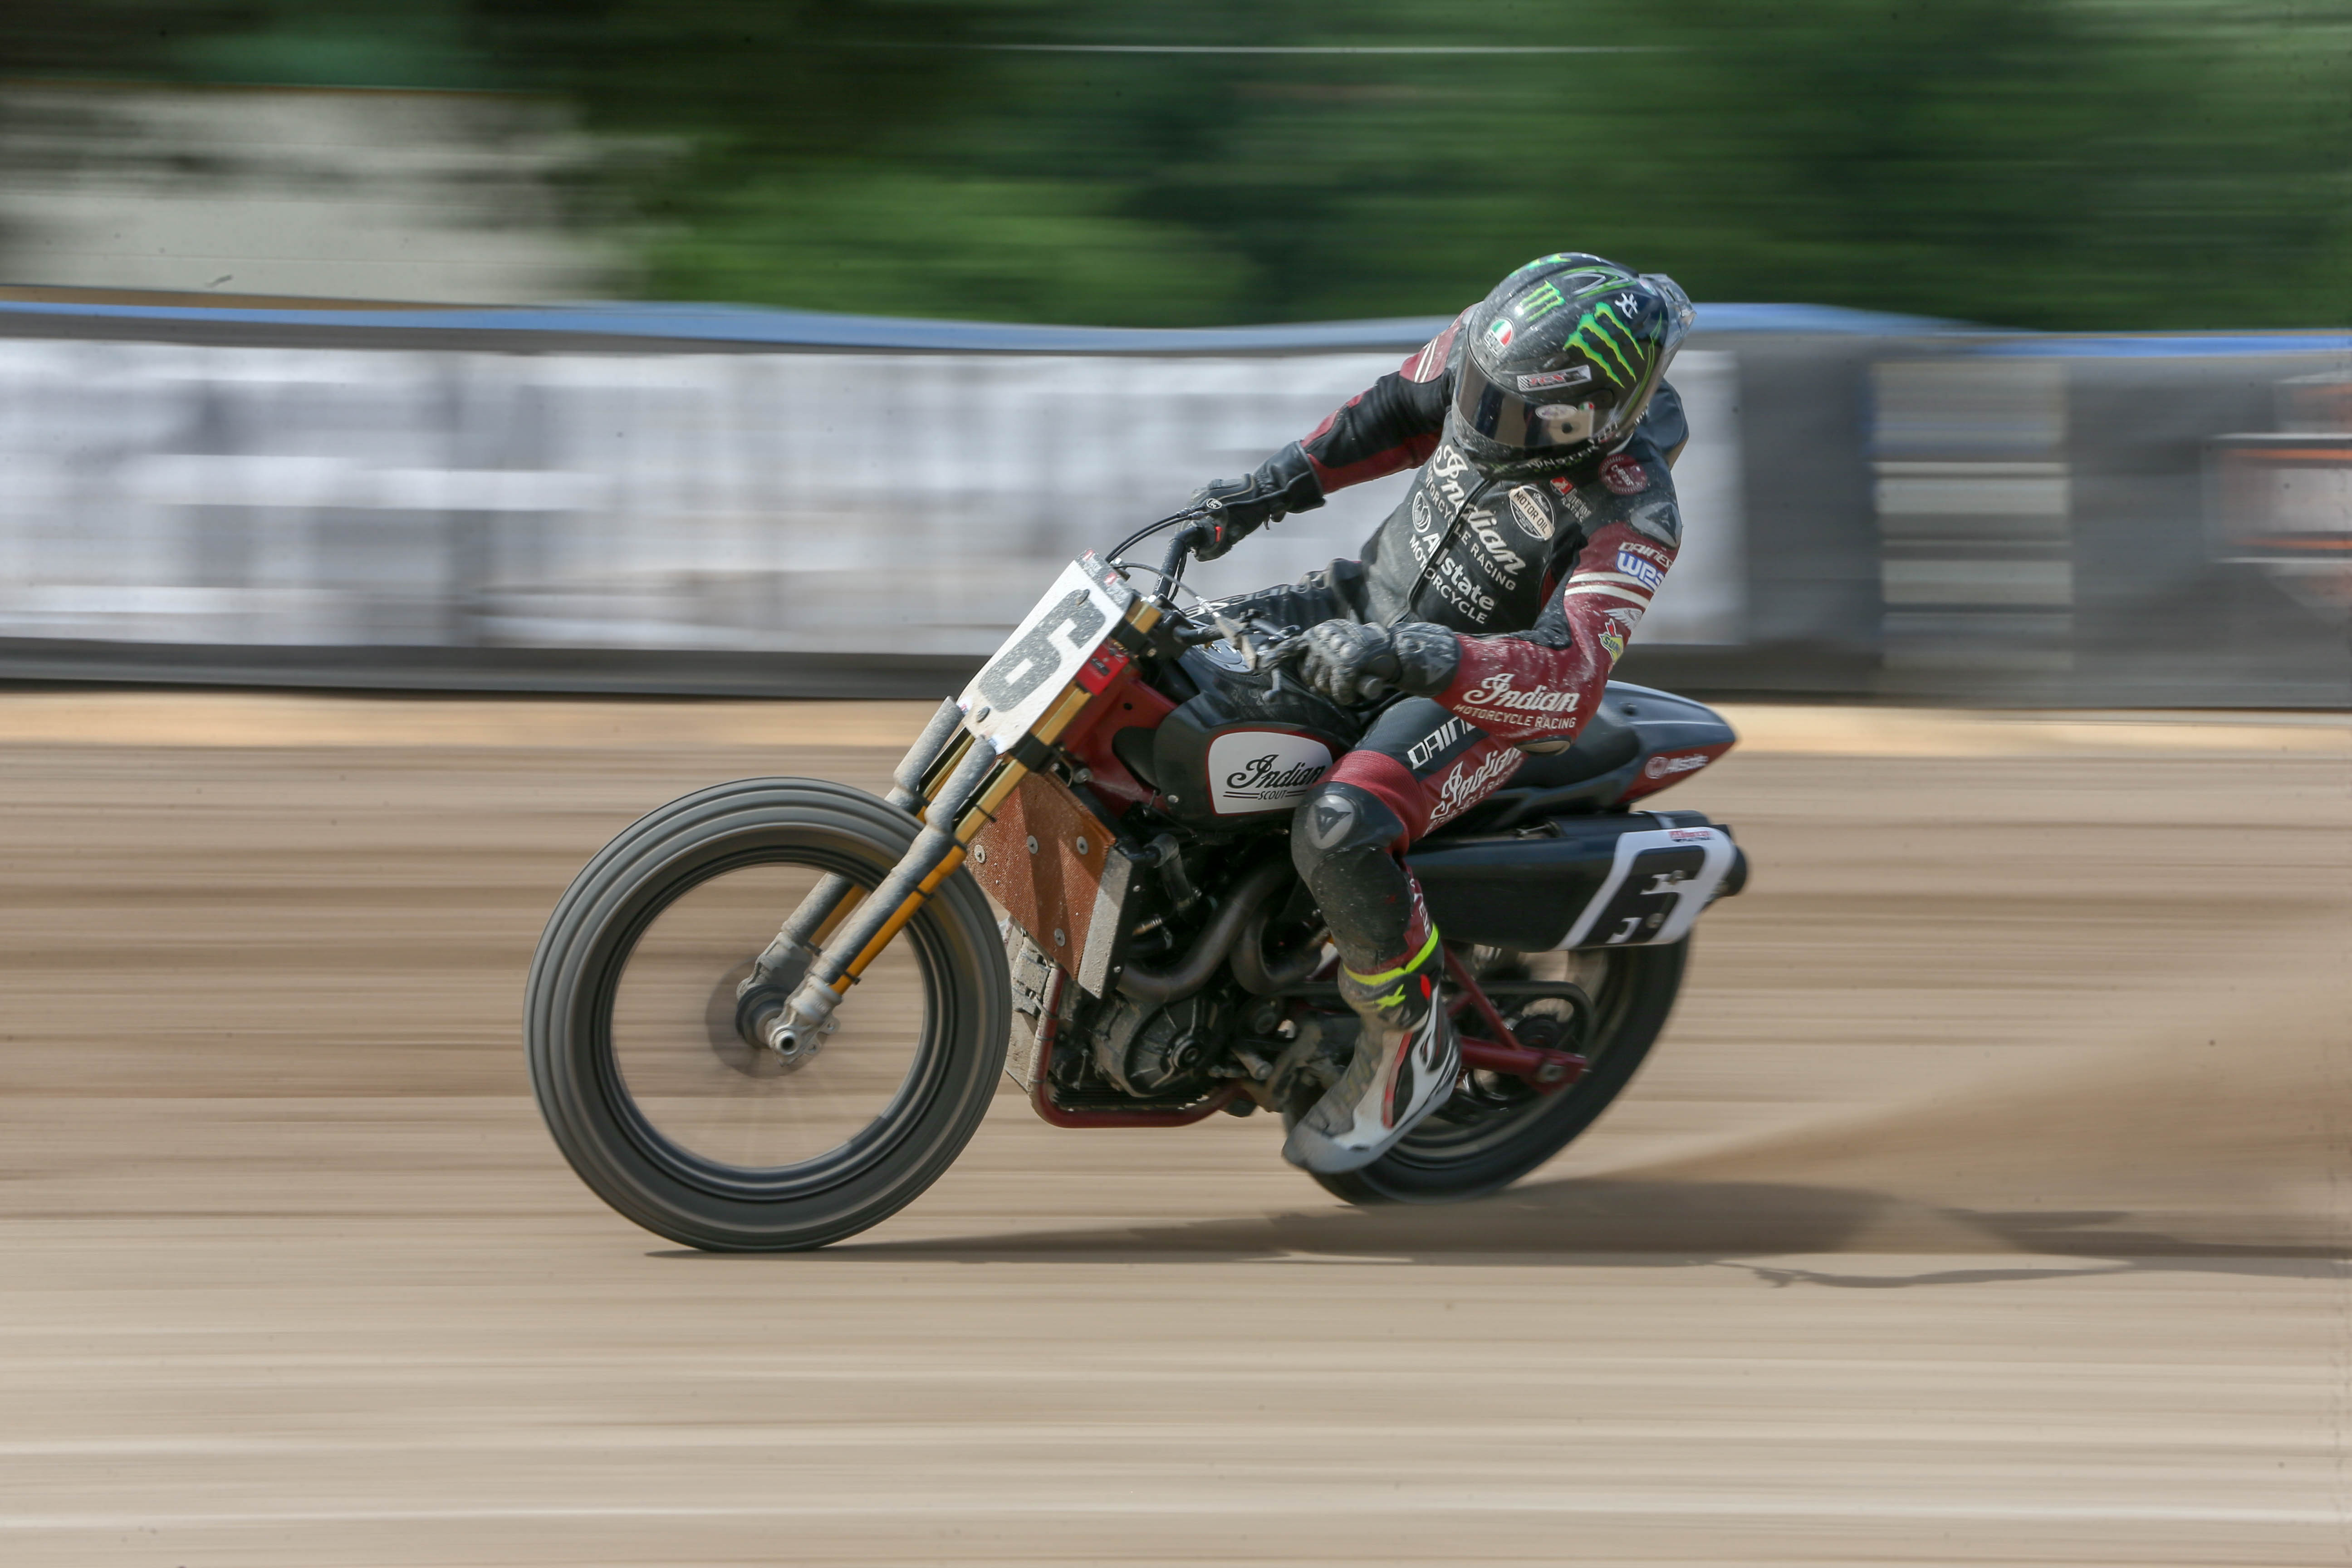 Baker in action - and in beautiful form - earlier this year at the Oklahoma City Mile